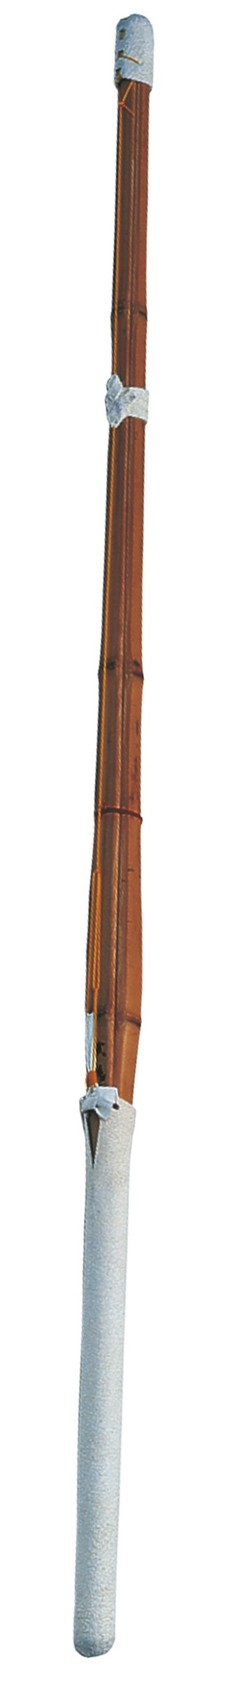 SHINAI ENFANT IMPORTATION (37) M40837